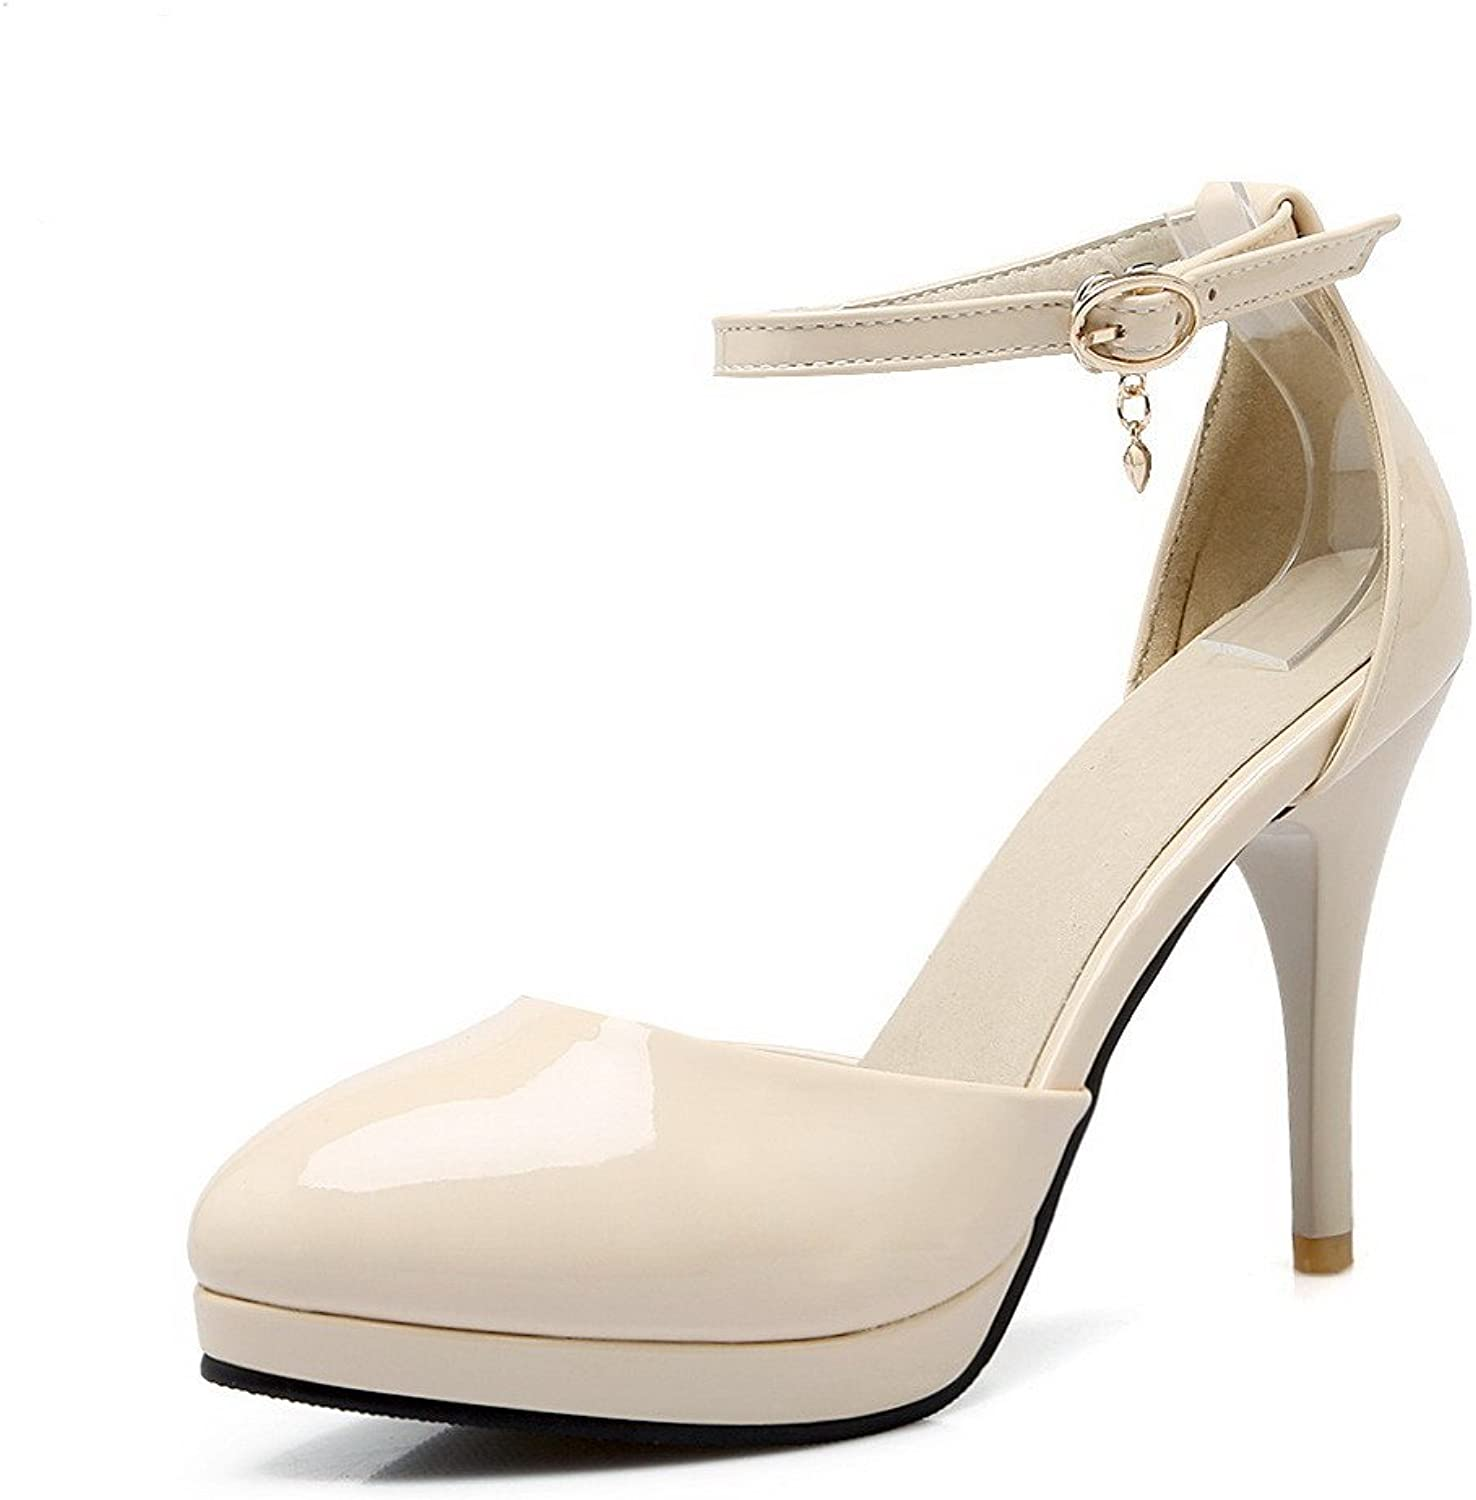 WeenFashion Women's Patent Leather Pointed Closed Toe Spikes Stilettos Buckle Pumps shoes